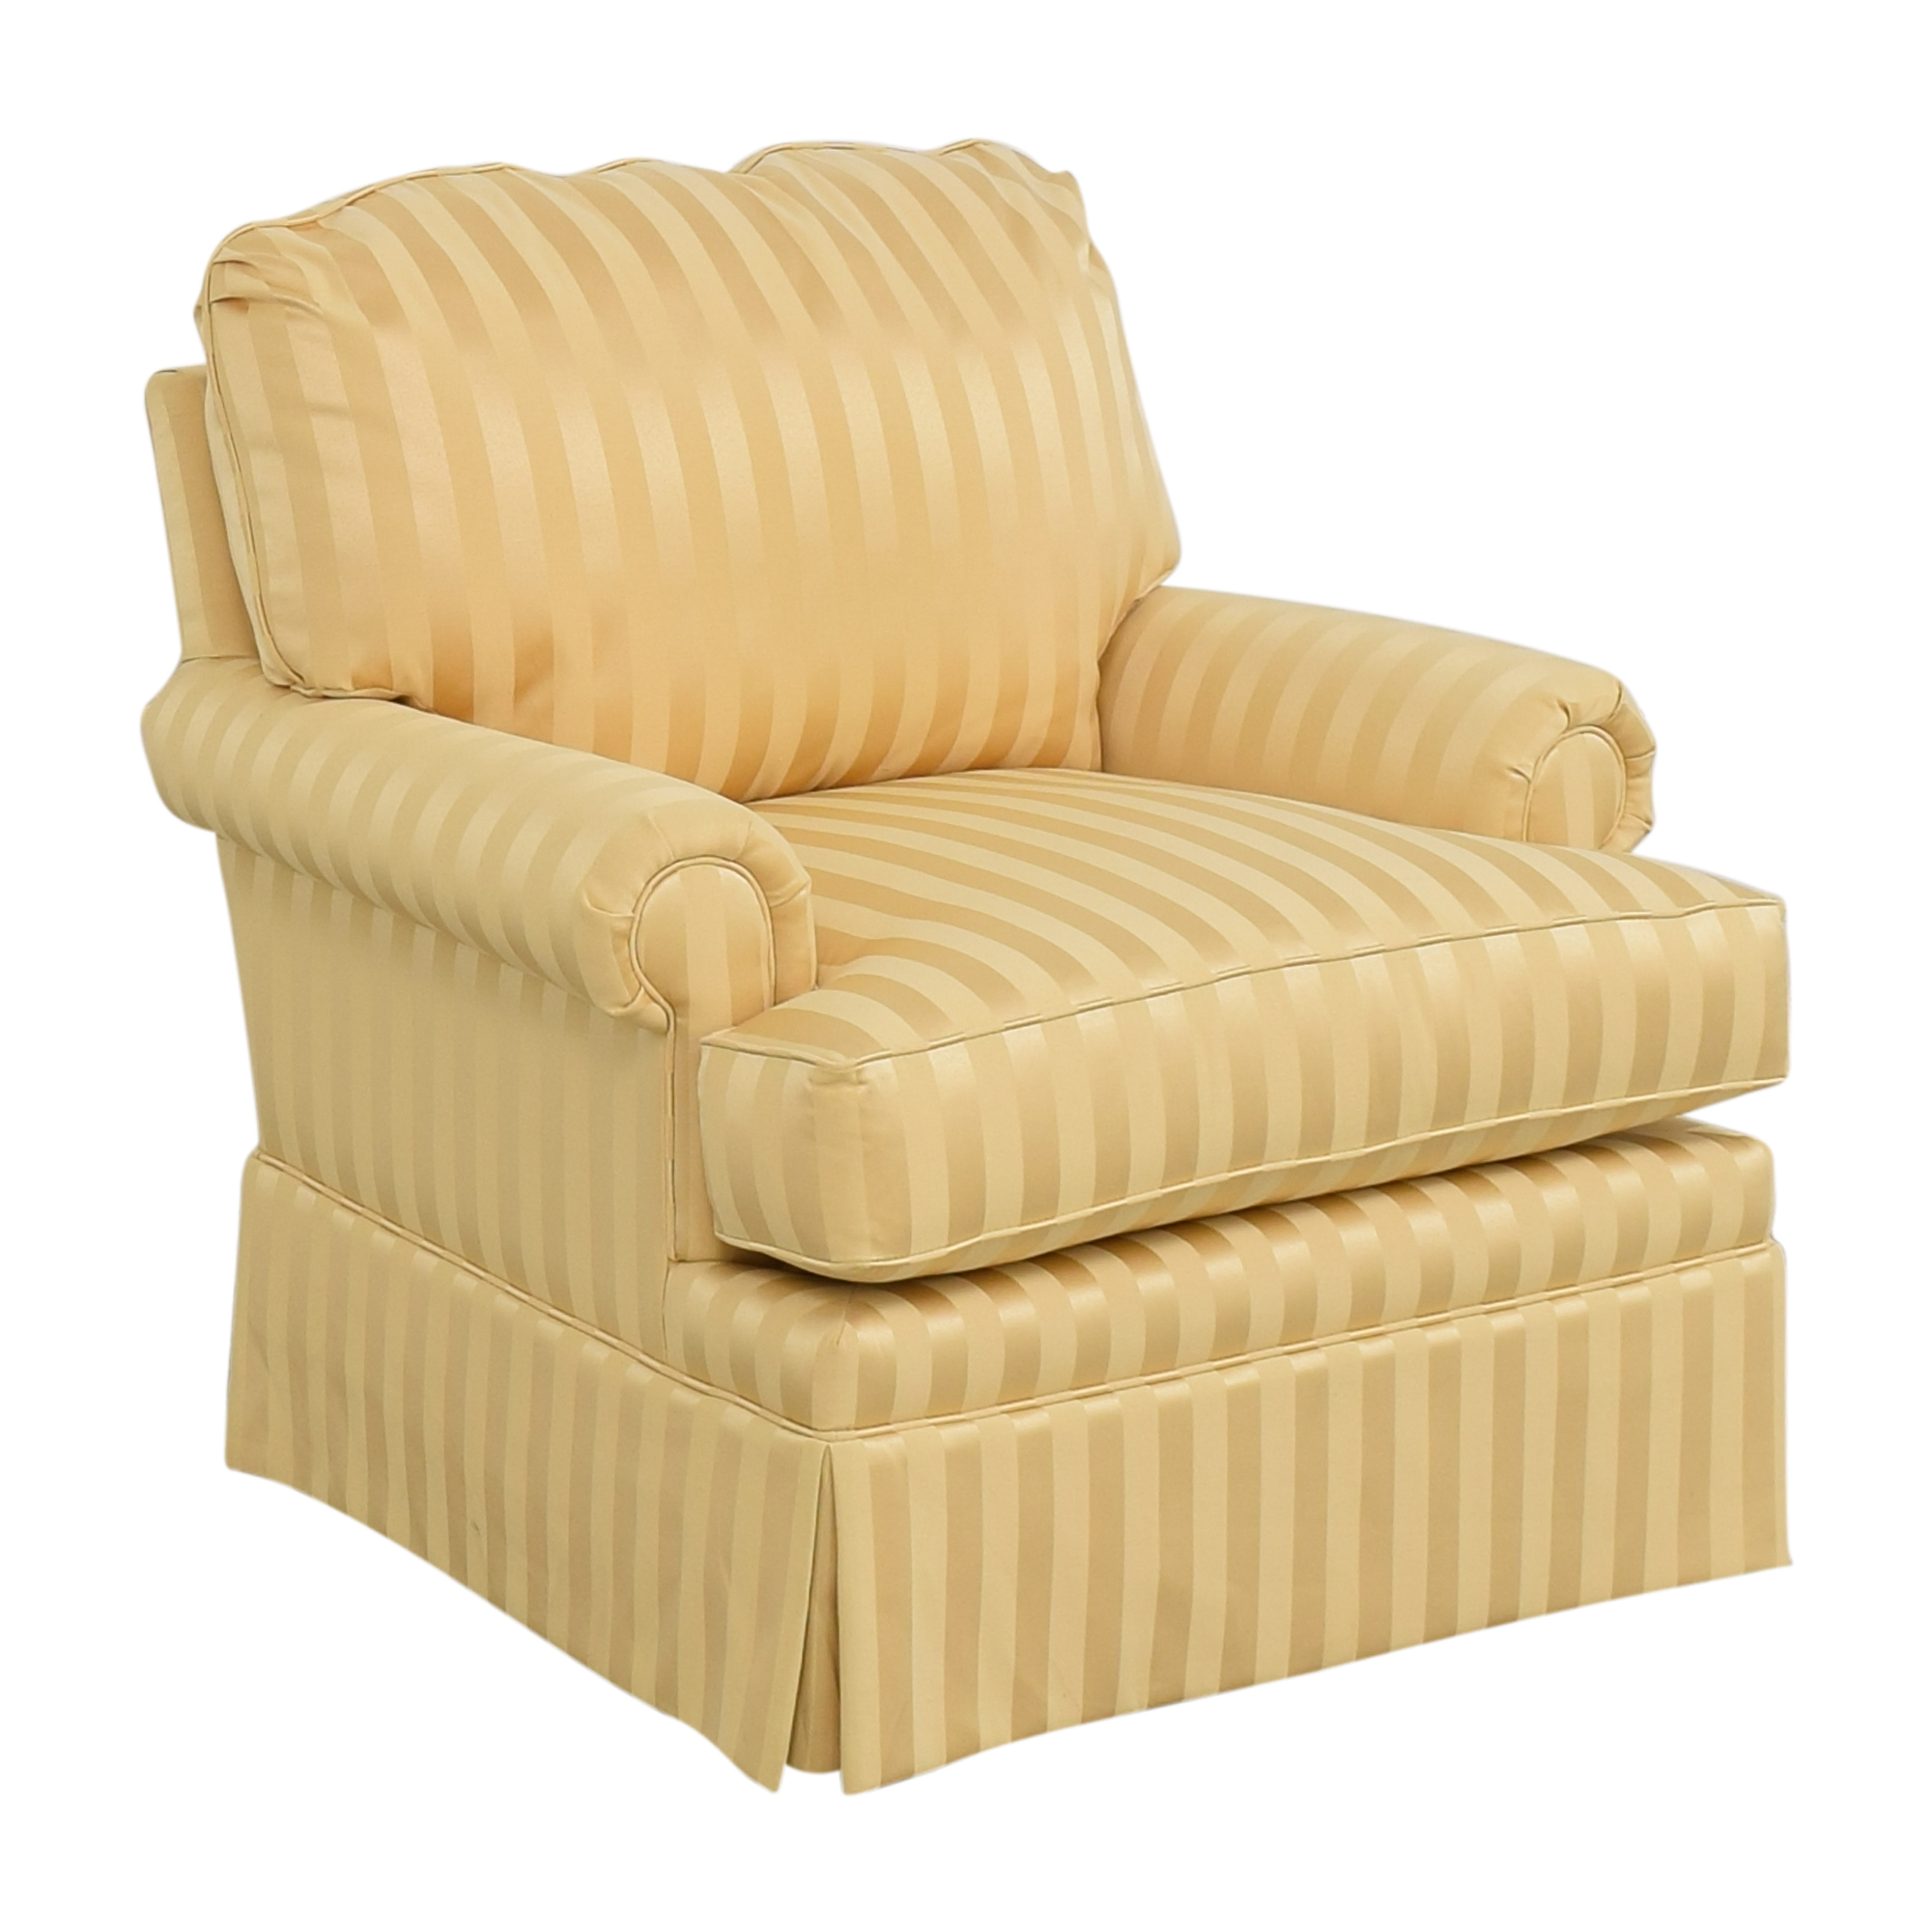 Thomasville Thomasville Stripe Accent Chair Accent Chairs